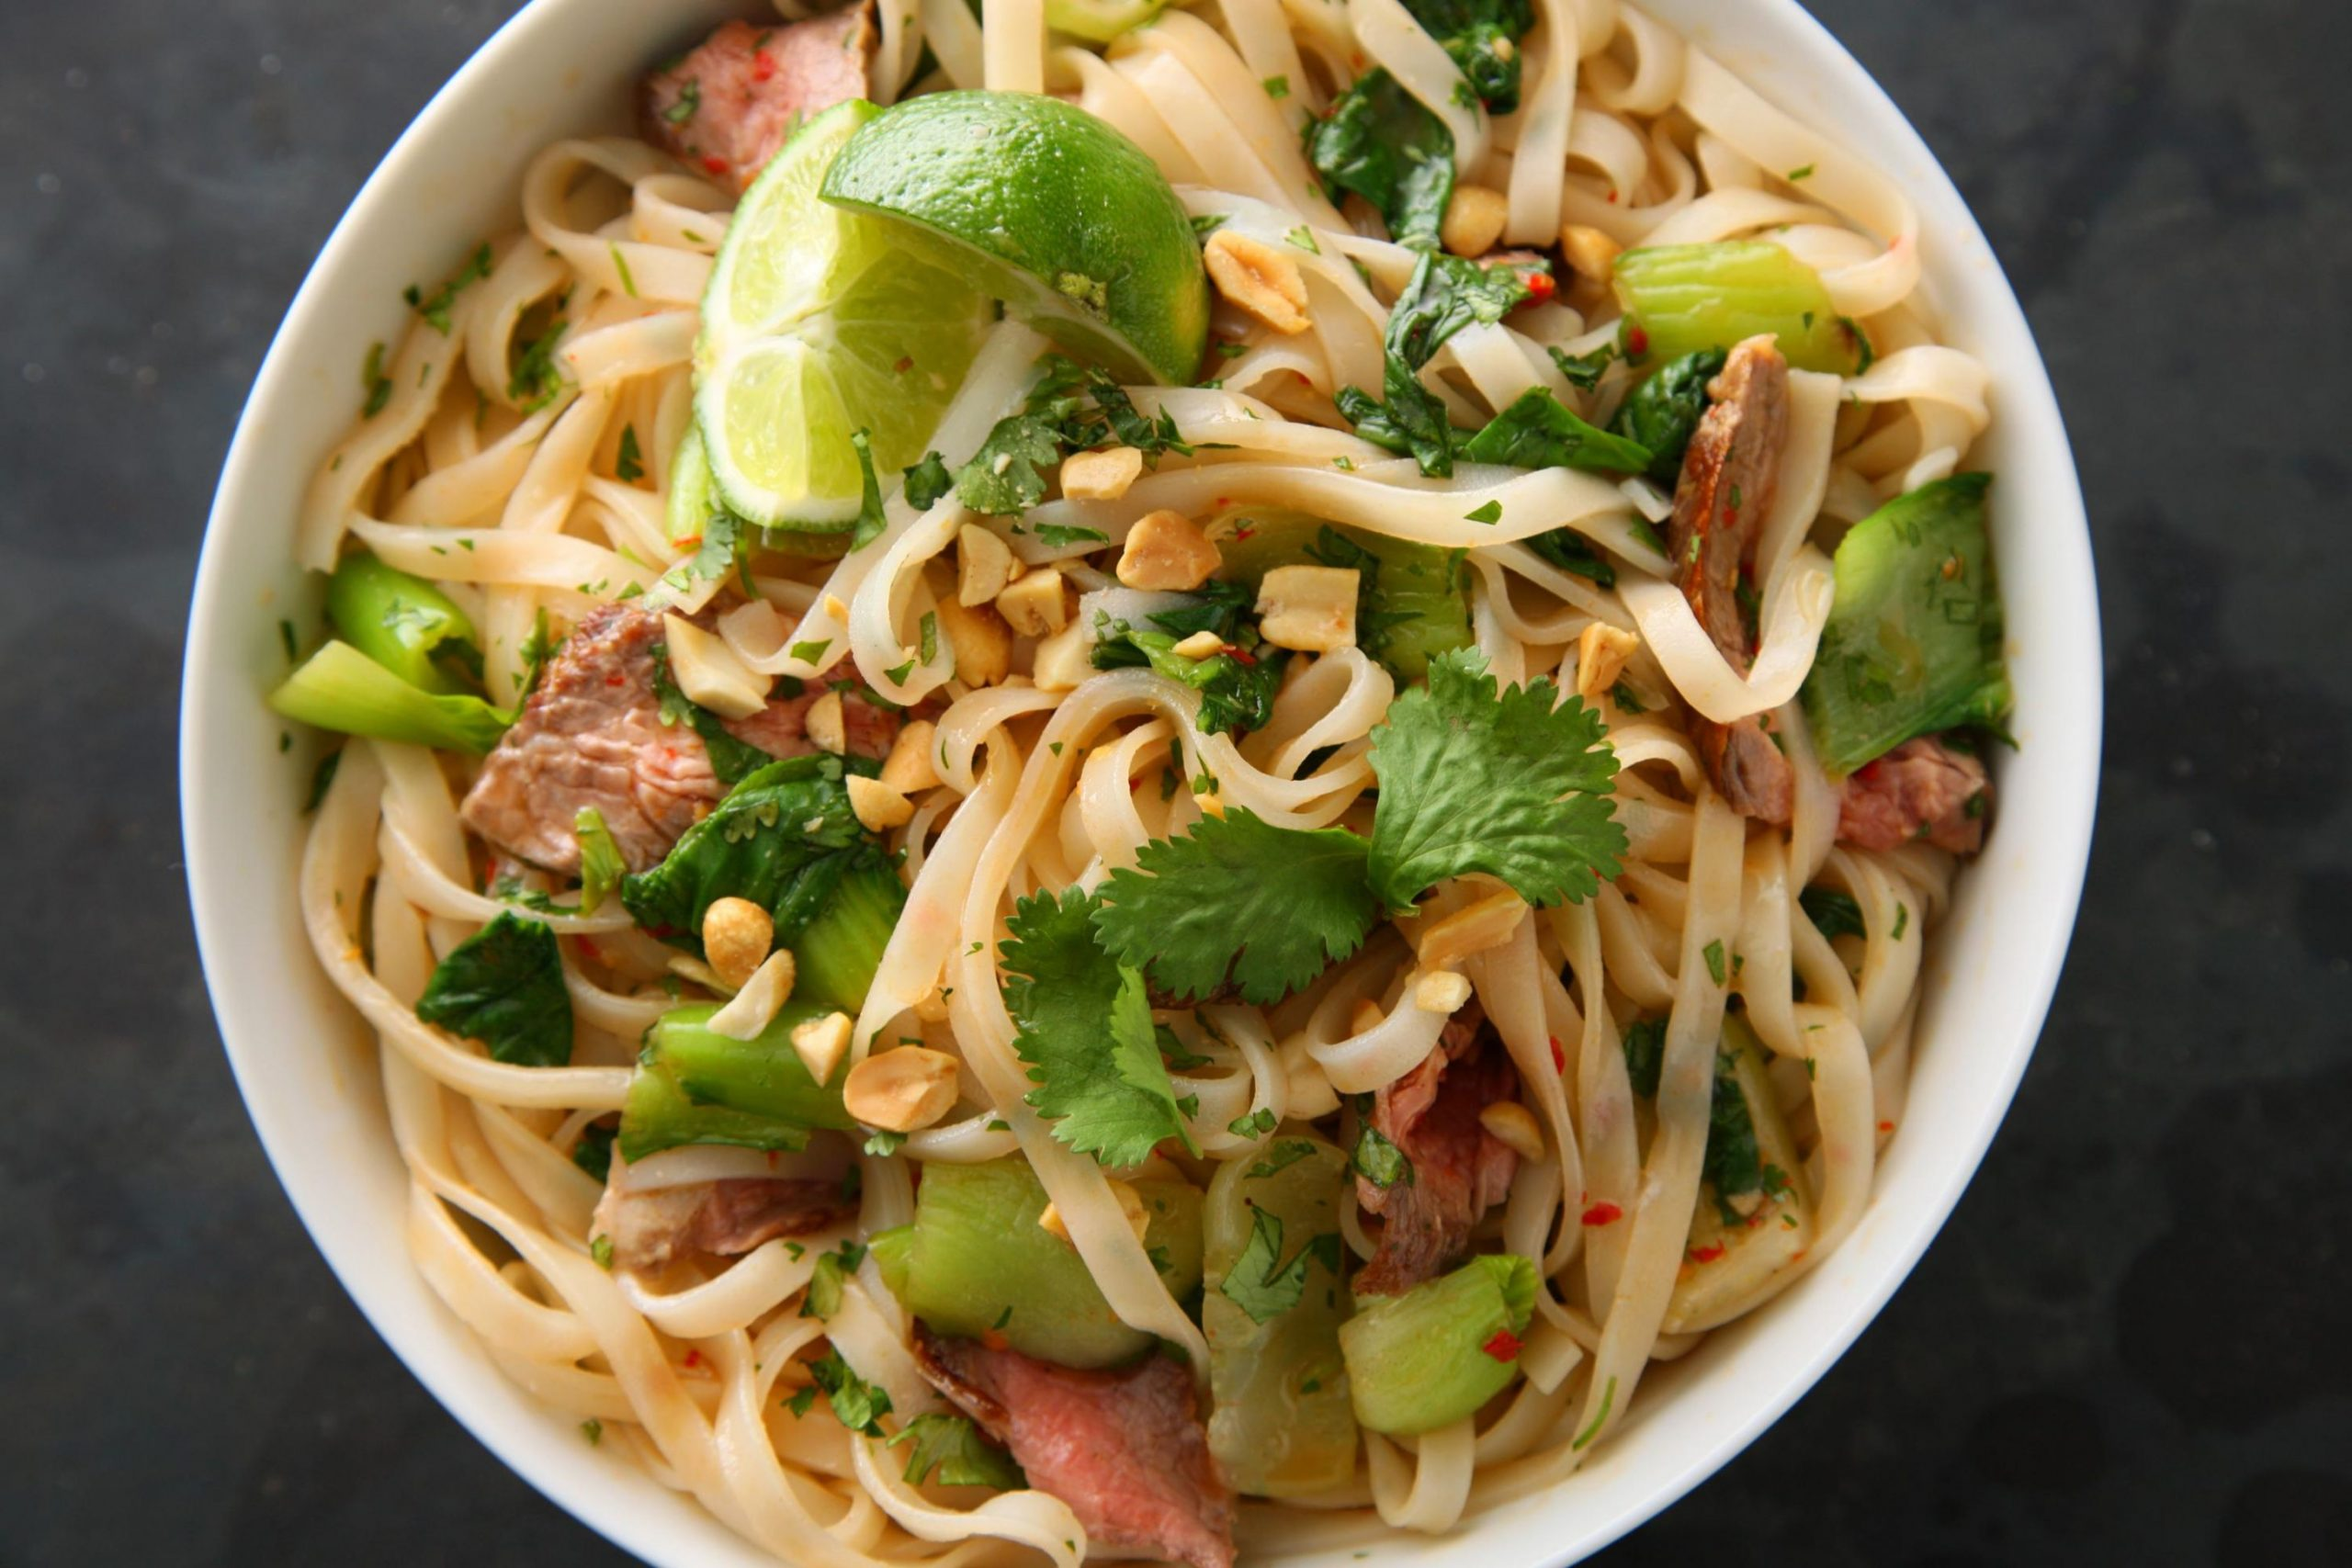 Seared Steak with Spicy Rice Noodles - Recipes Using Rice Noodles